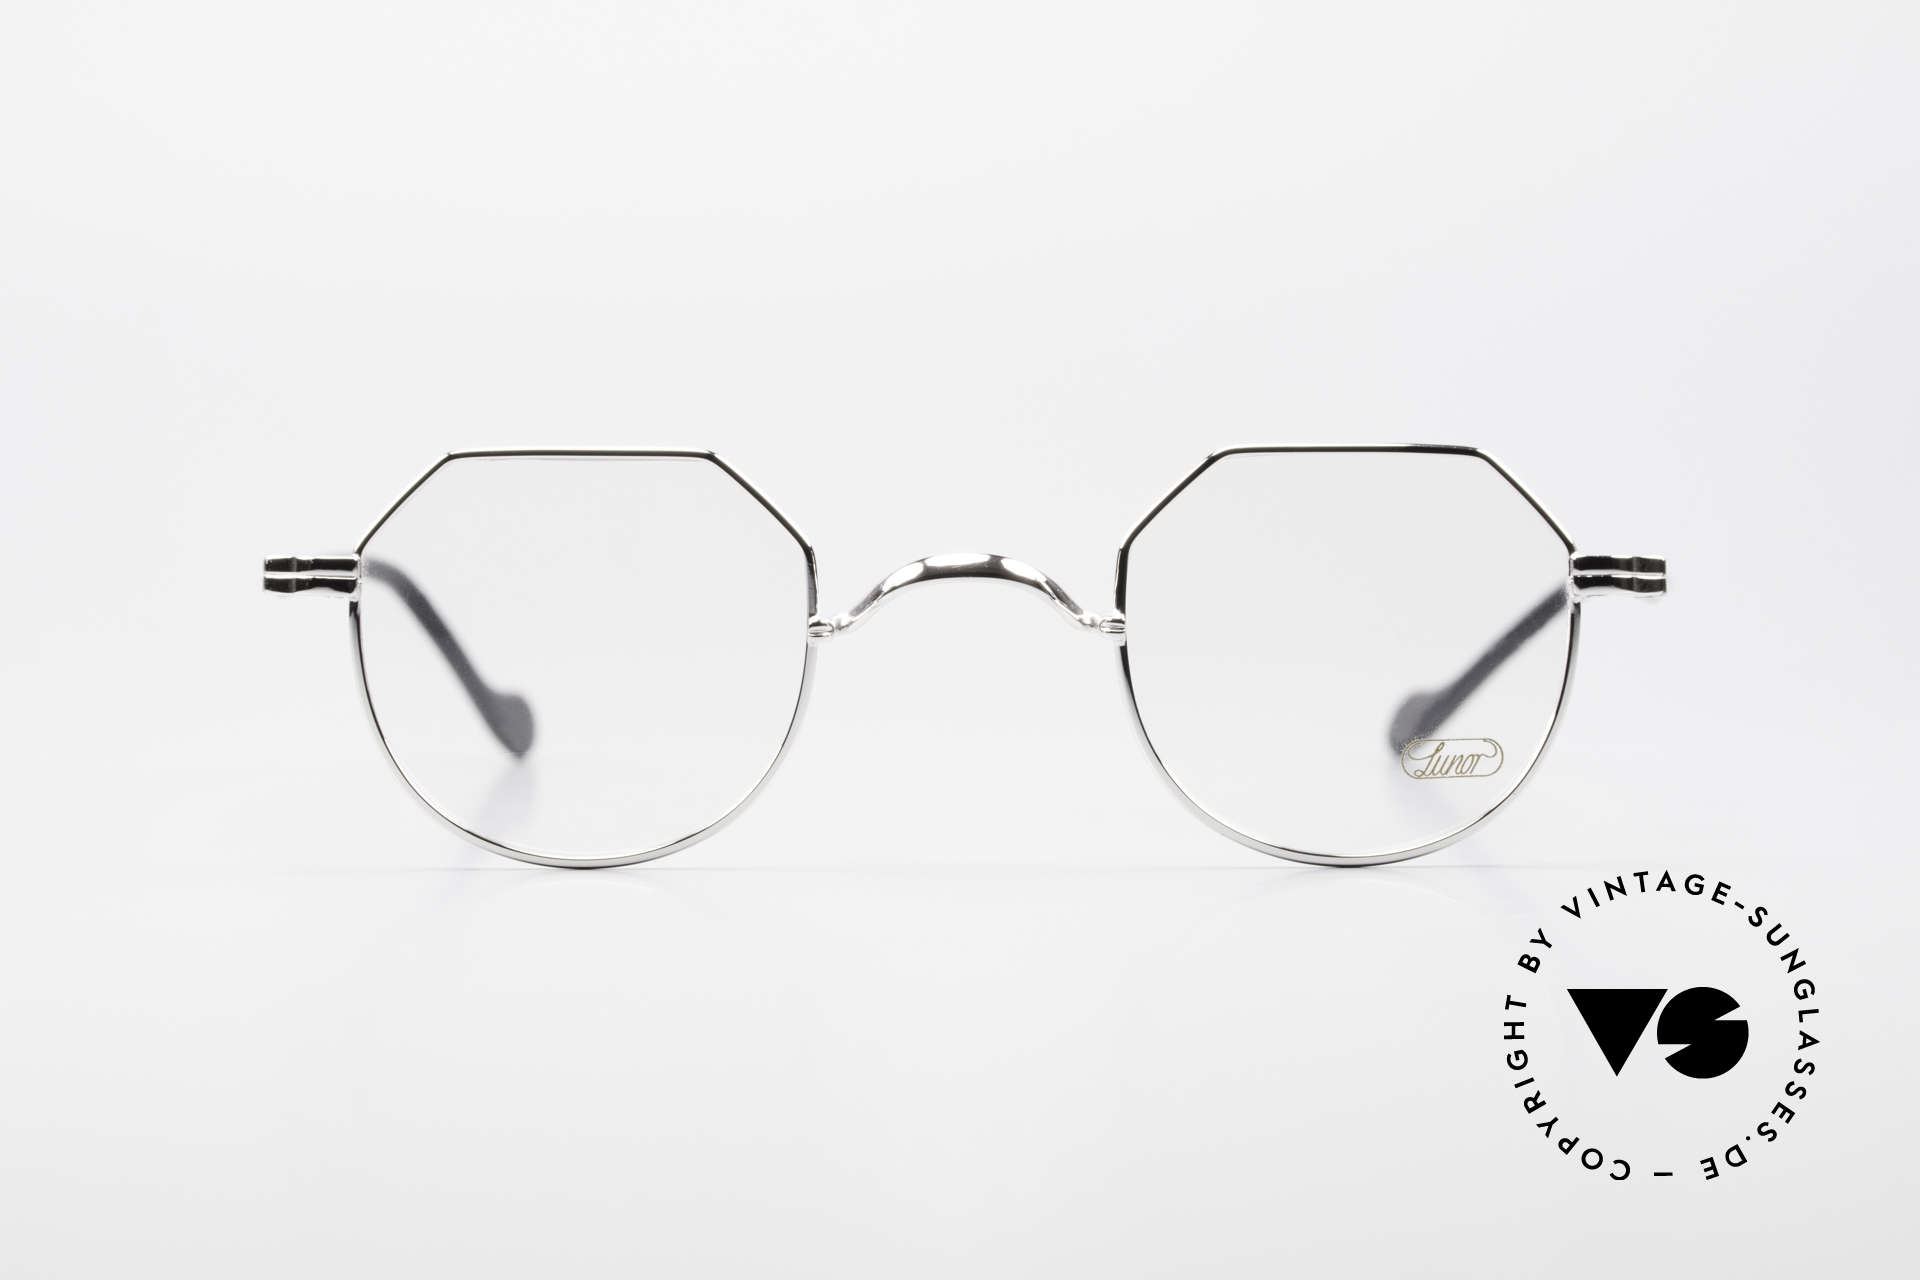 Lunor II A 18 Square Panto Frame Platinum, combination: full rimmed metal frame & acetate temples, Made for Men and Women